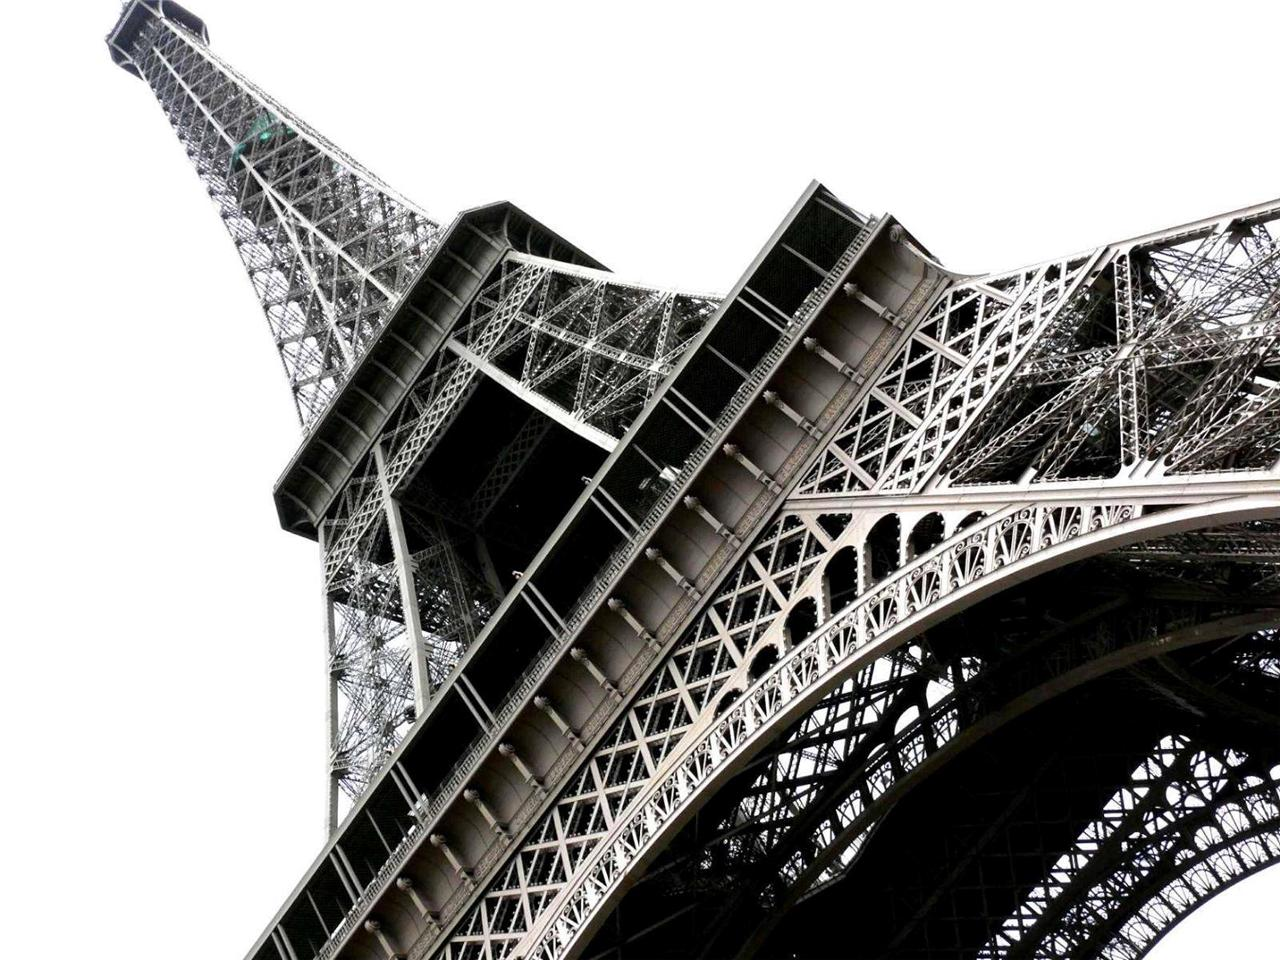 ikea paris eiffel tower canvas picture wall decor 78x55 new On eiffel tower wall mural ikea